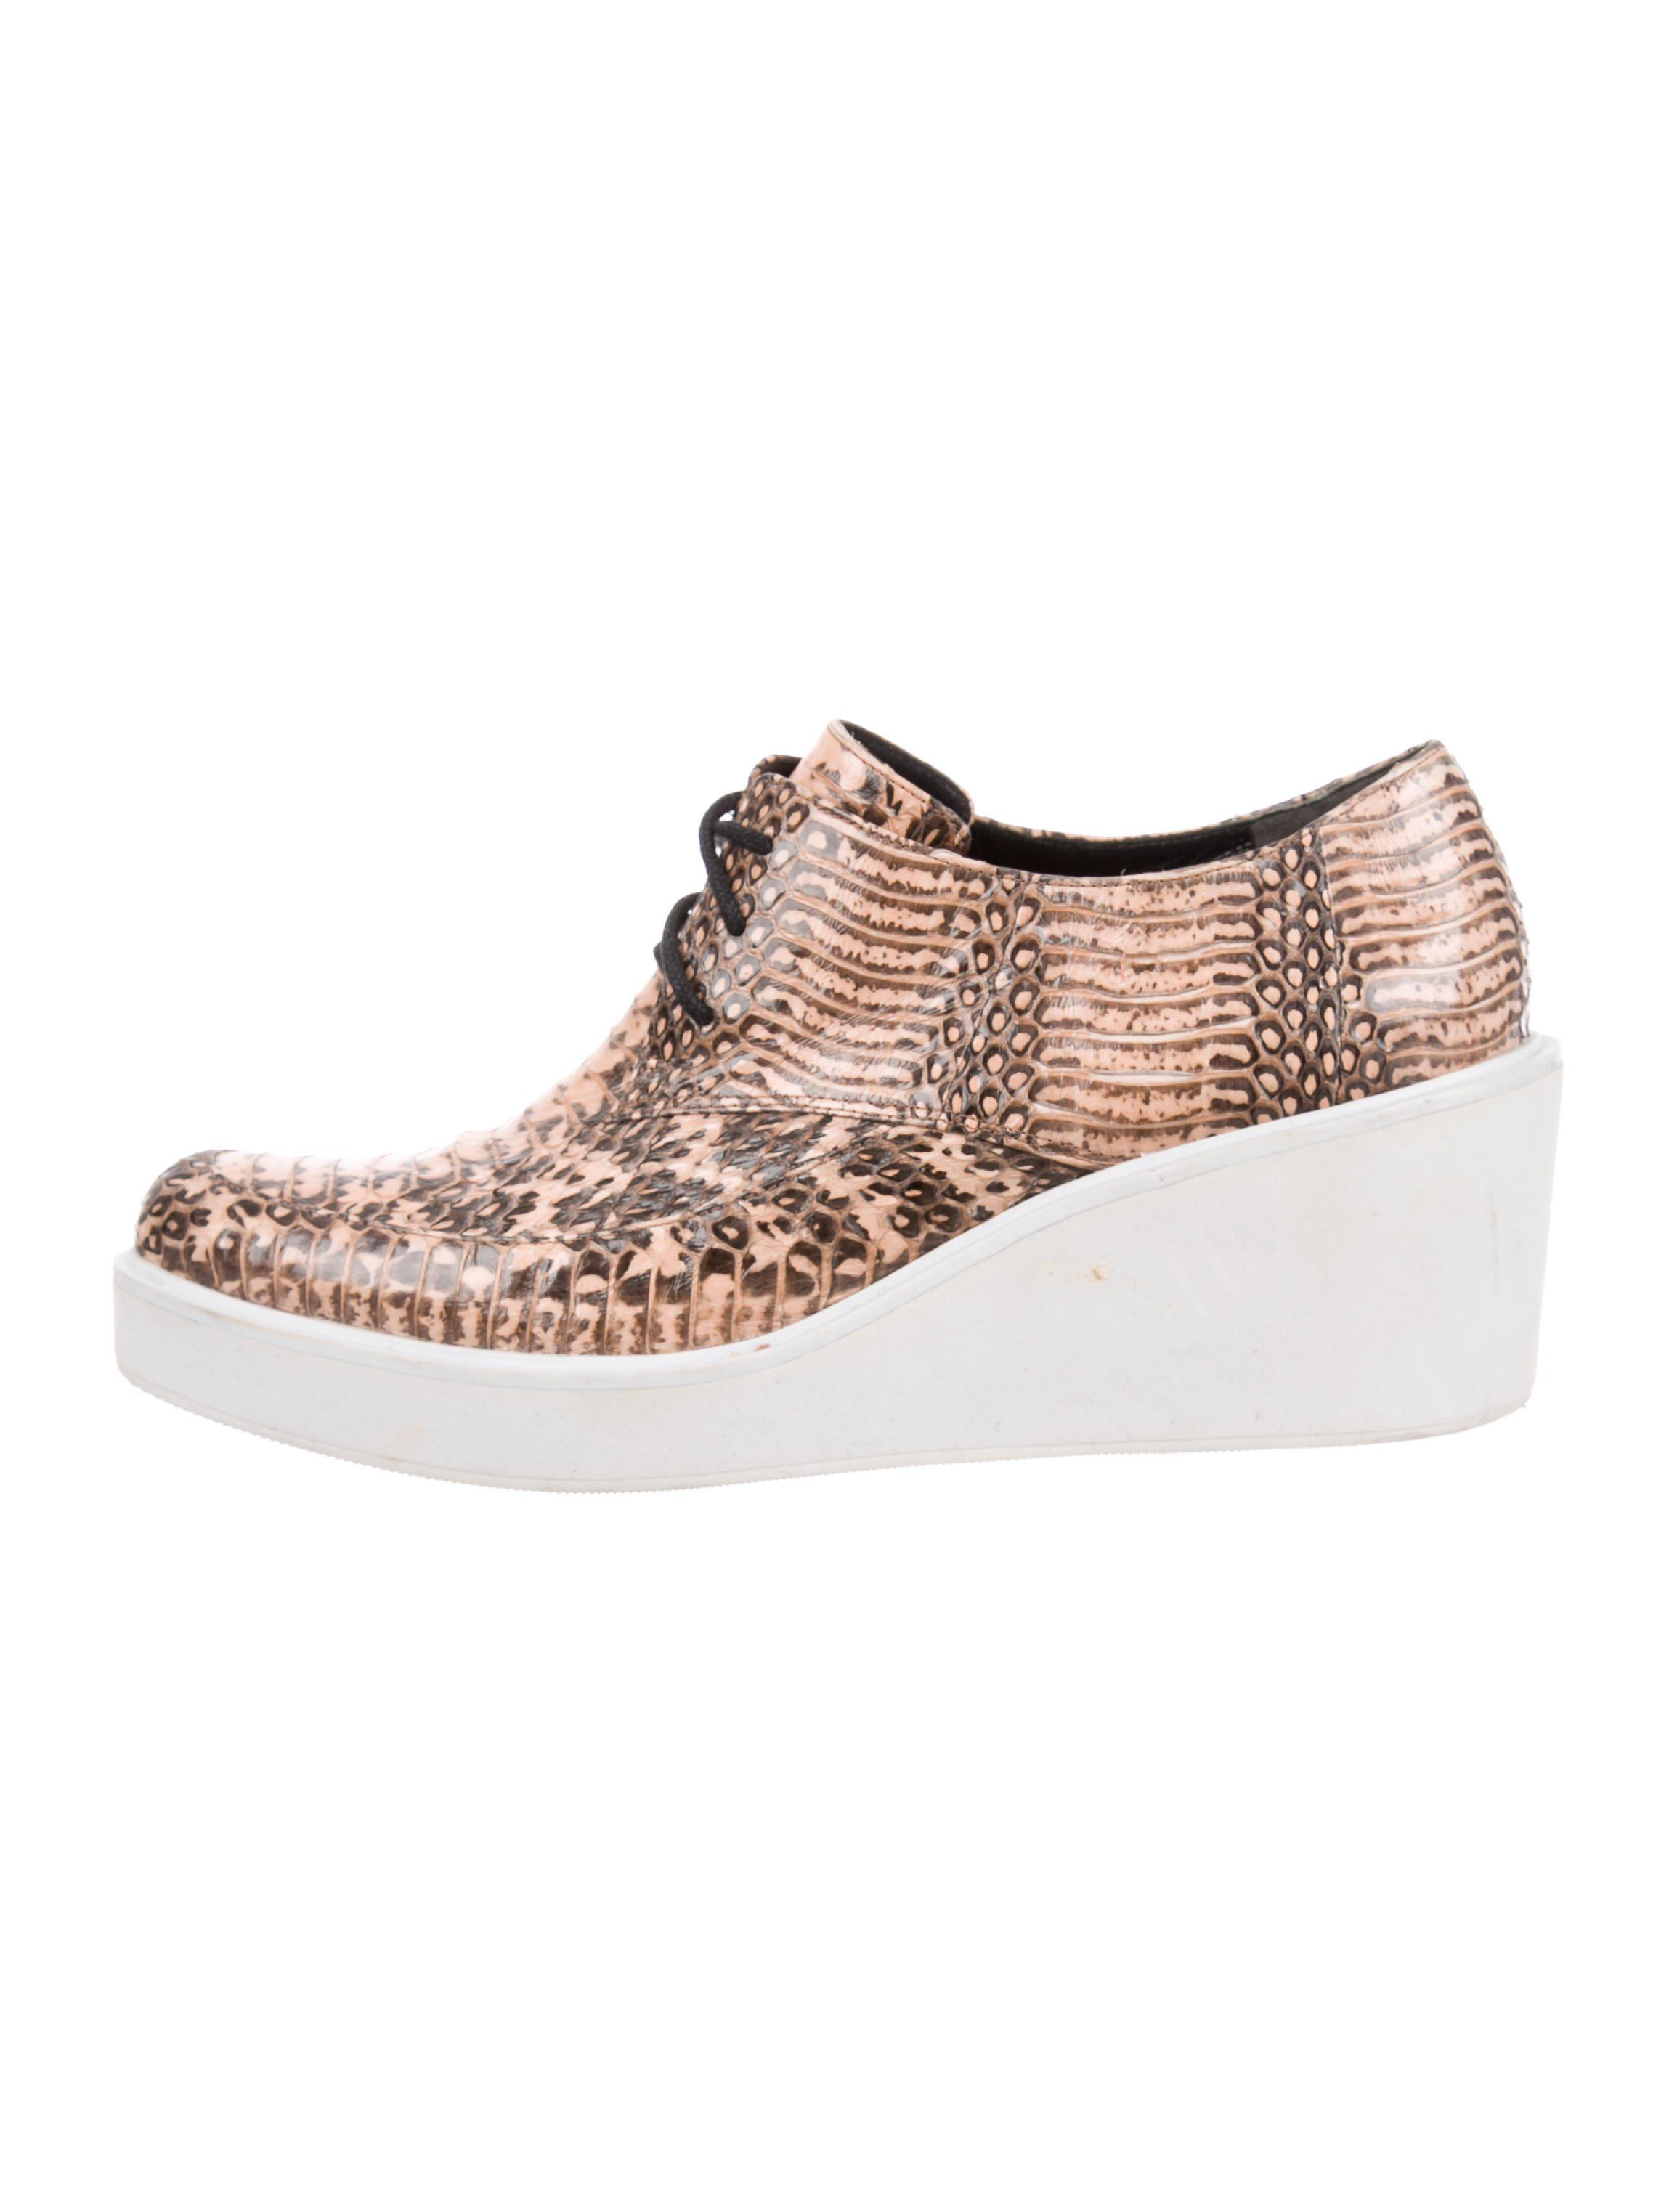 outlet enjoy 2015 new cheap price 3.1 Phillip Lim Snakeskin Wedge Sneakers buy cheap many kinds of 100% guaranteed for sale buy cheap genuine kXX7mZQ2X